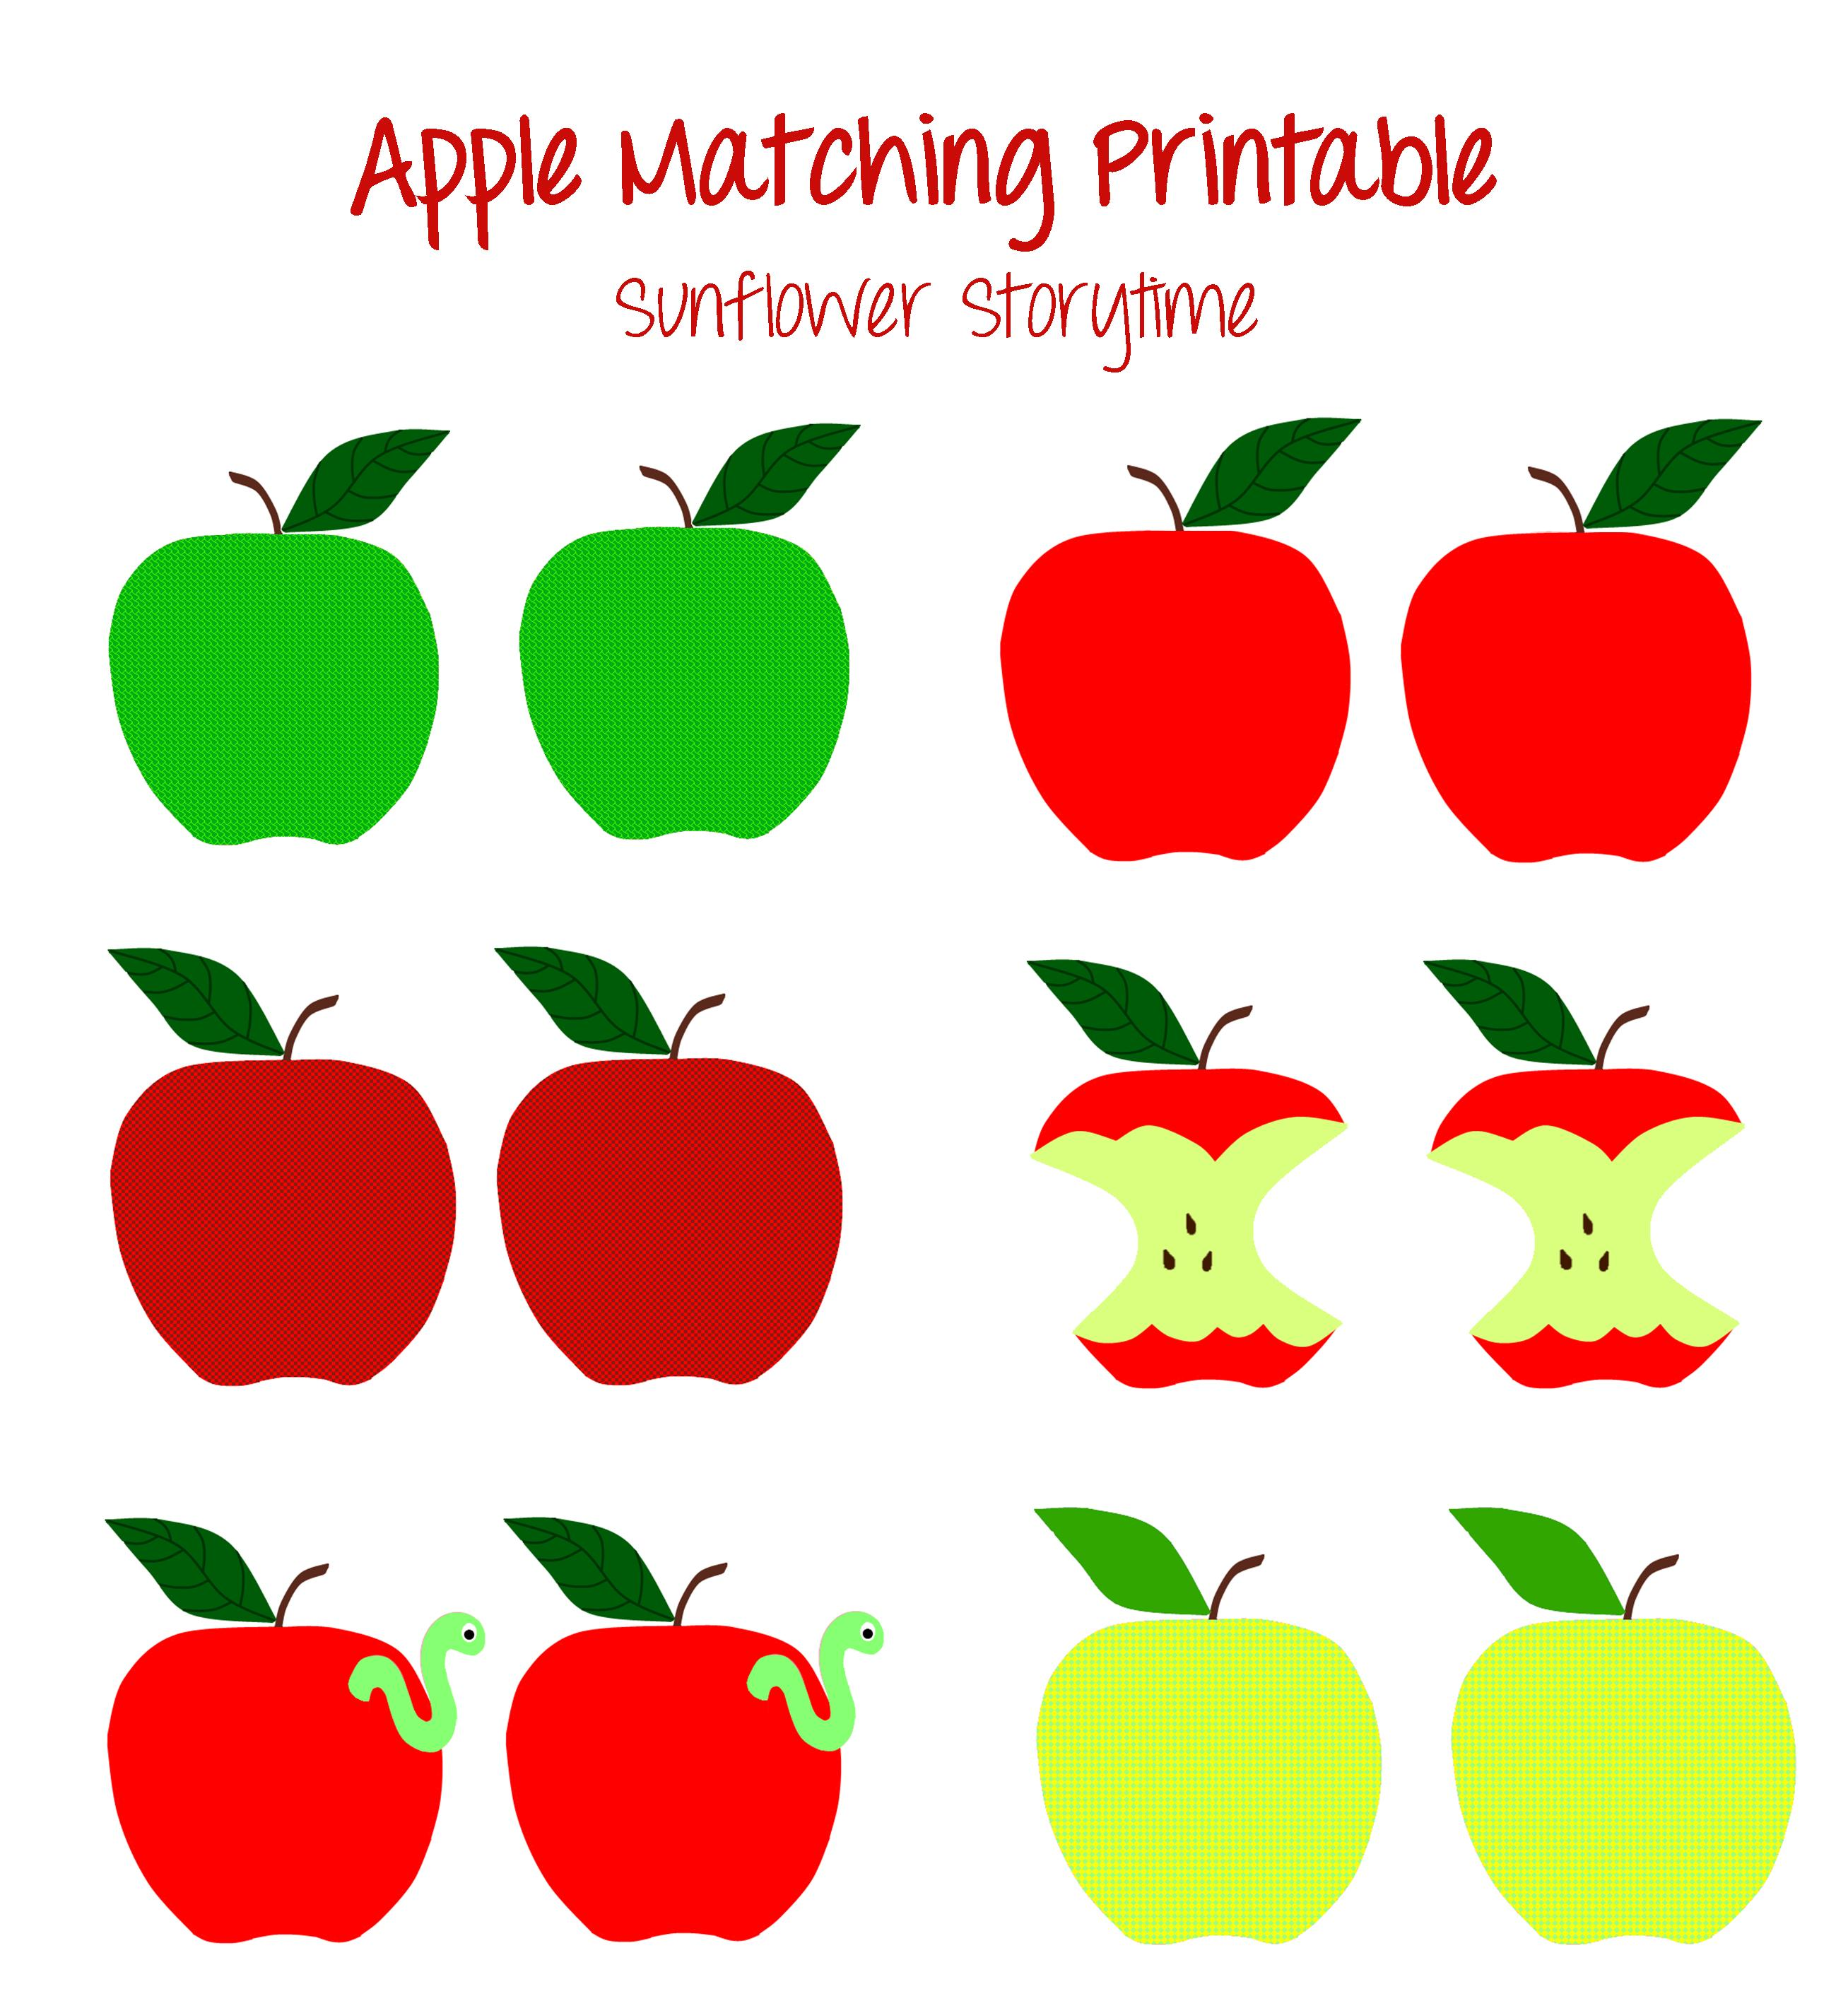 photo about Printable Apple Pictures named Apple Matching Printable Sunflower Storytime